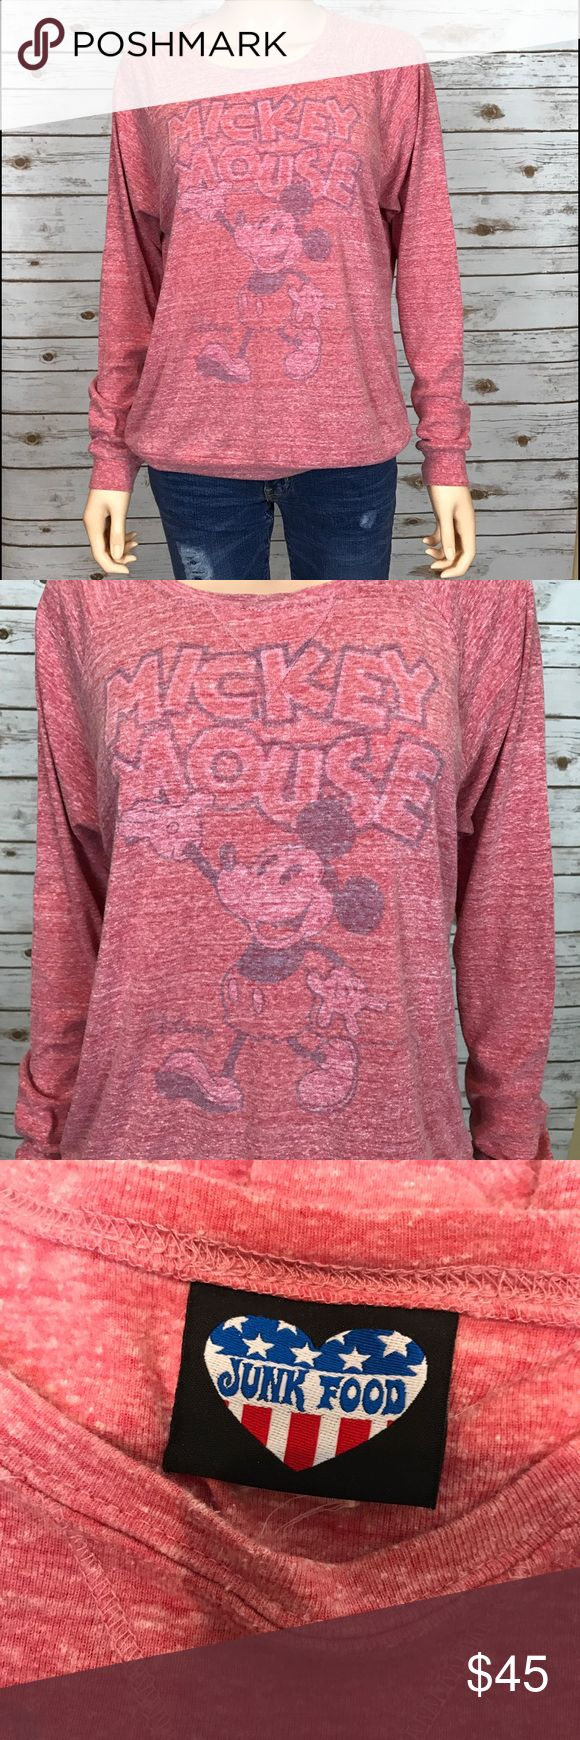 Junk Food Mickey Mouse Sweatshirt Sz. M This is a size medium Junk Food Mickey Mouse sweatshirt. The color is a mix between a light red and light pink. It was made to look kind of distressed and heathered, with the graphics slightly faded. It's not from wear. I wore this one time in Disneyland. It looks brand new. It's honestly good for any time of the year. It is not a super thin sweatshirt, but also not very thick. It can be worn by itself with jeans and cute boots or sneakers or it can be…